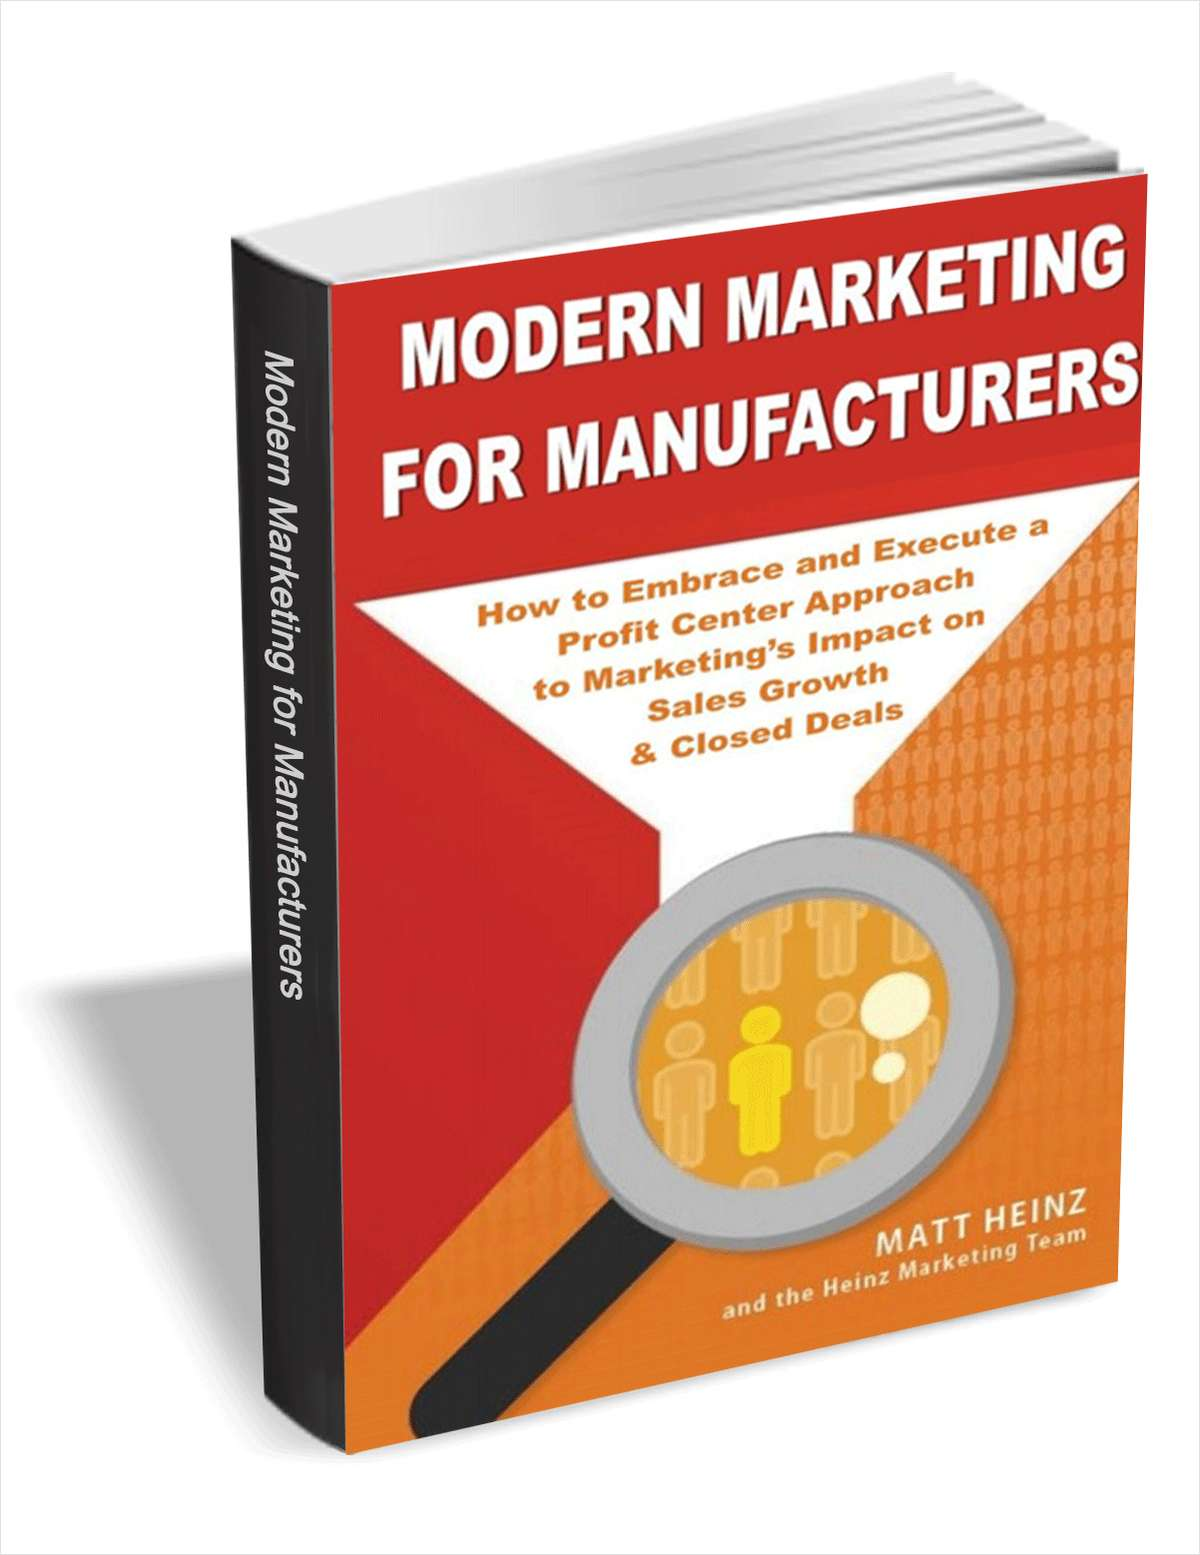 Modern Marketing for Manufacturers